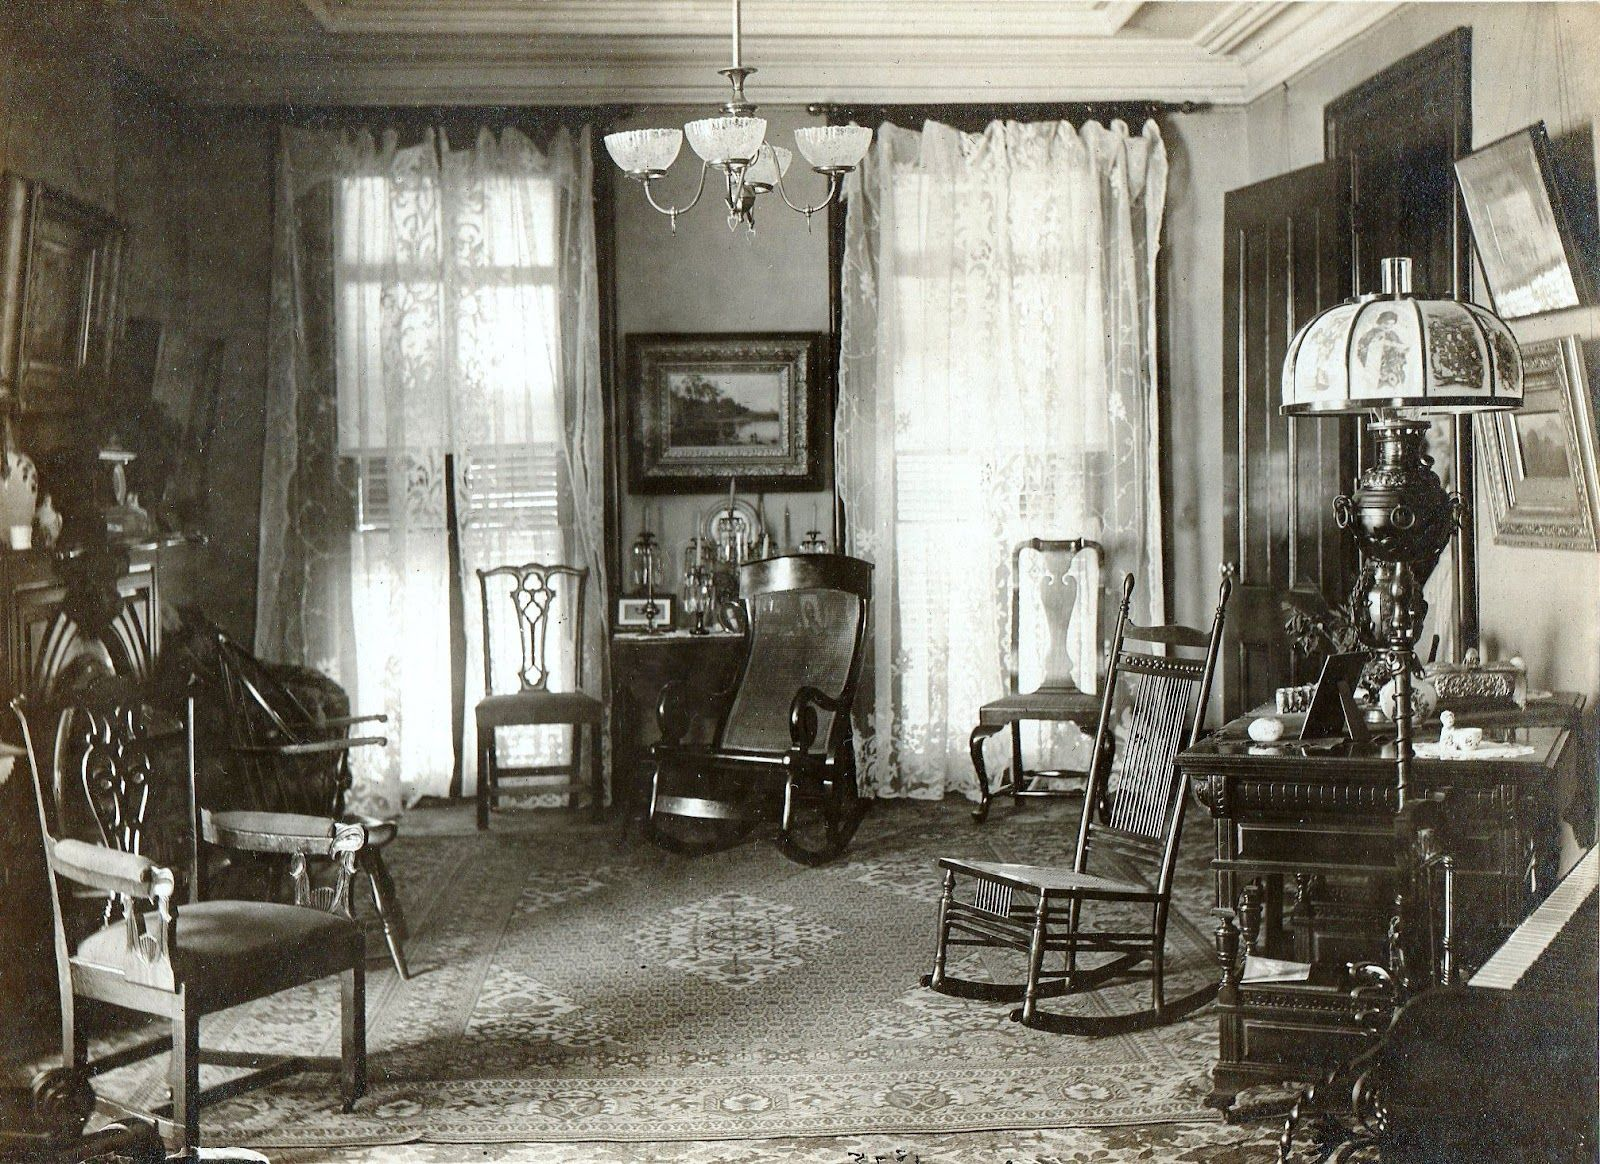 An Intimate Portrait Of Home Period Views Of Domestic